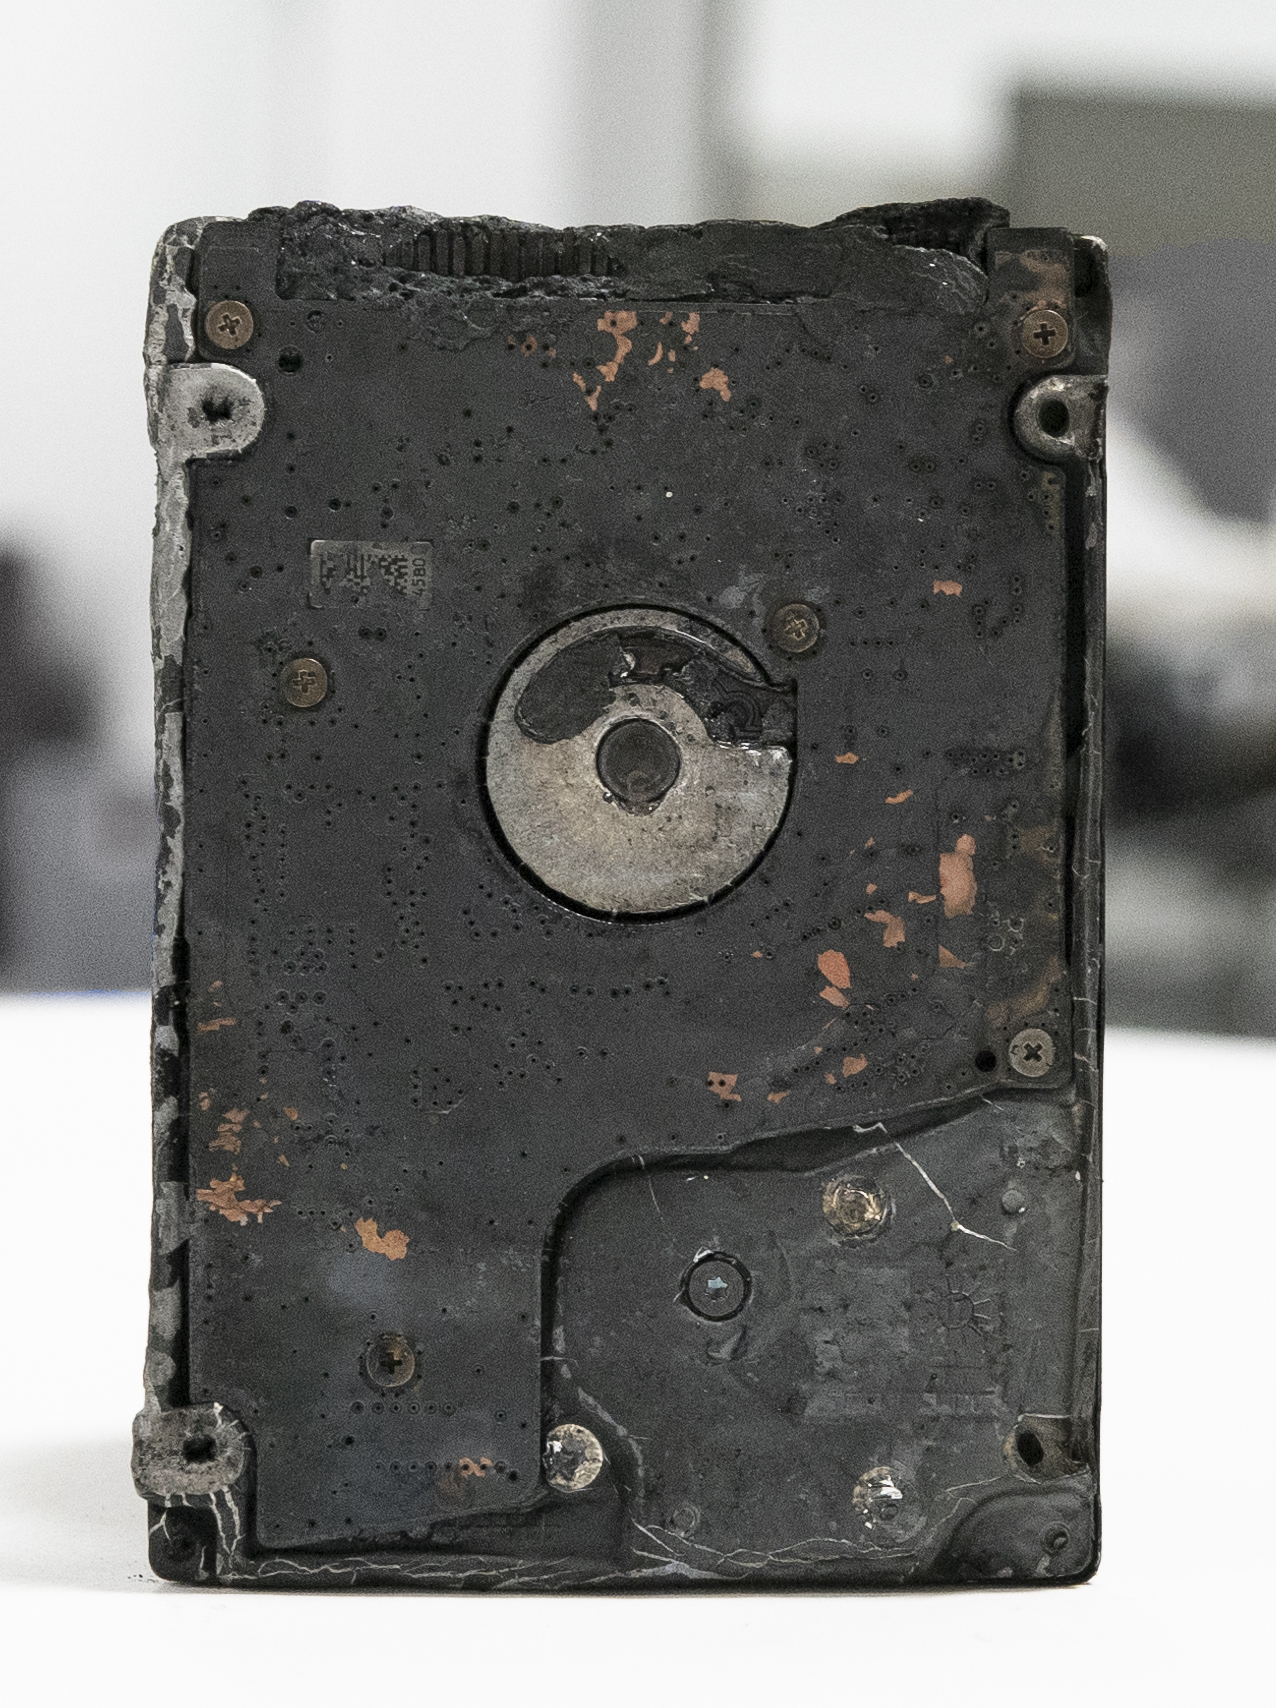 Fire Damage Hard Drive